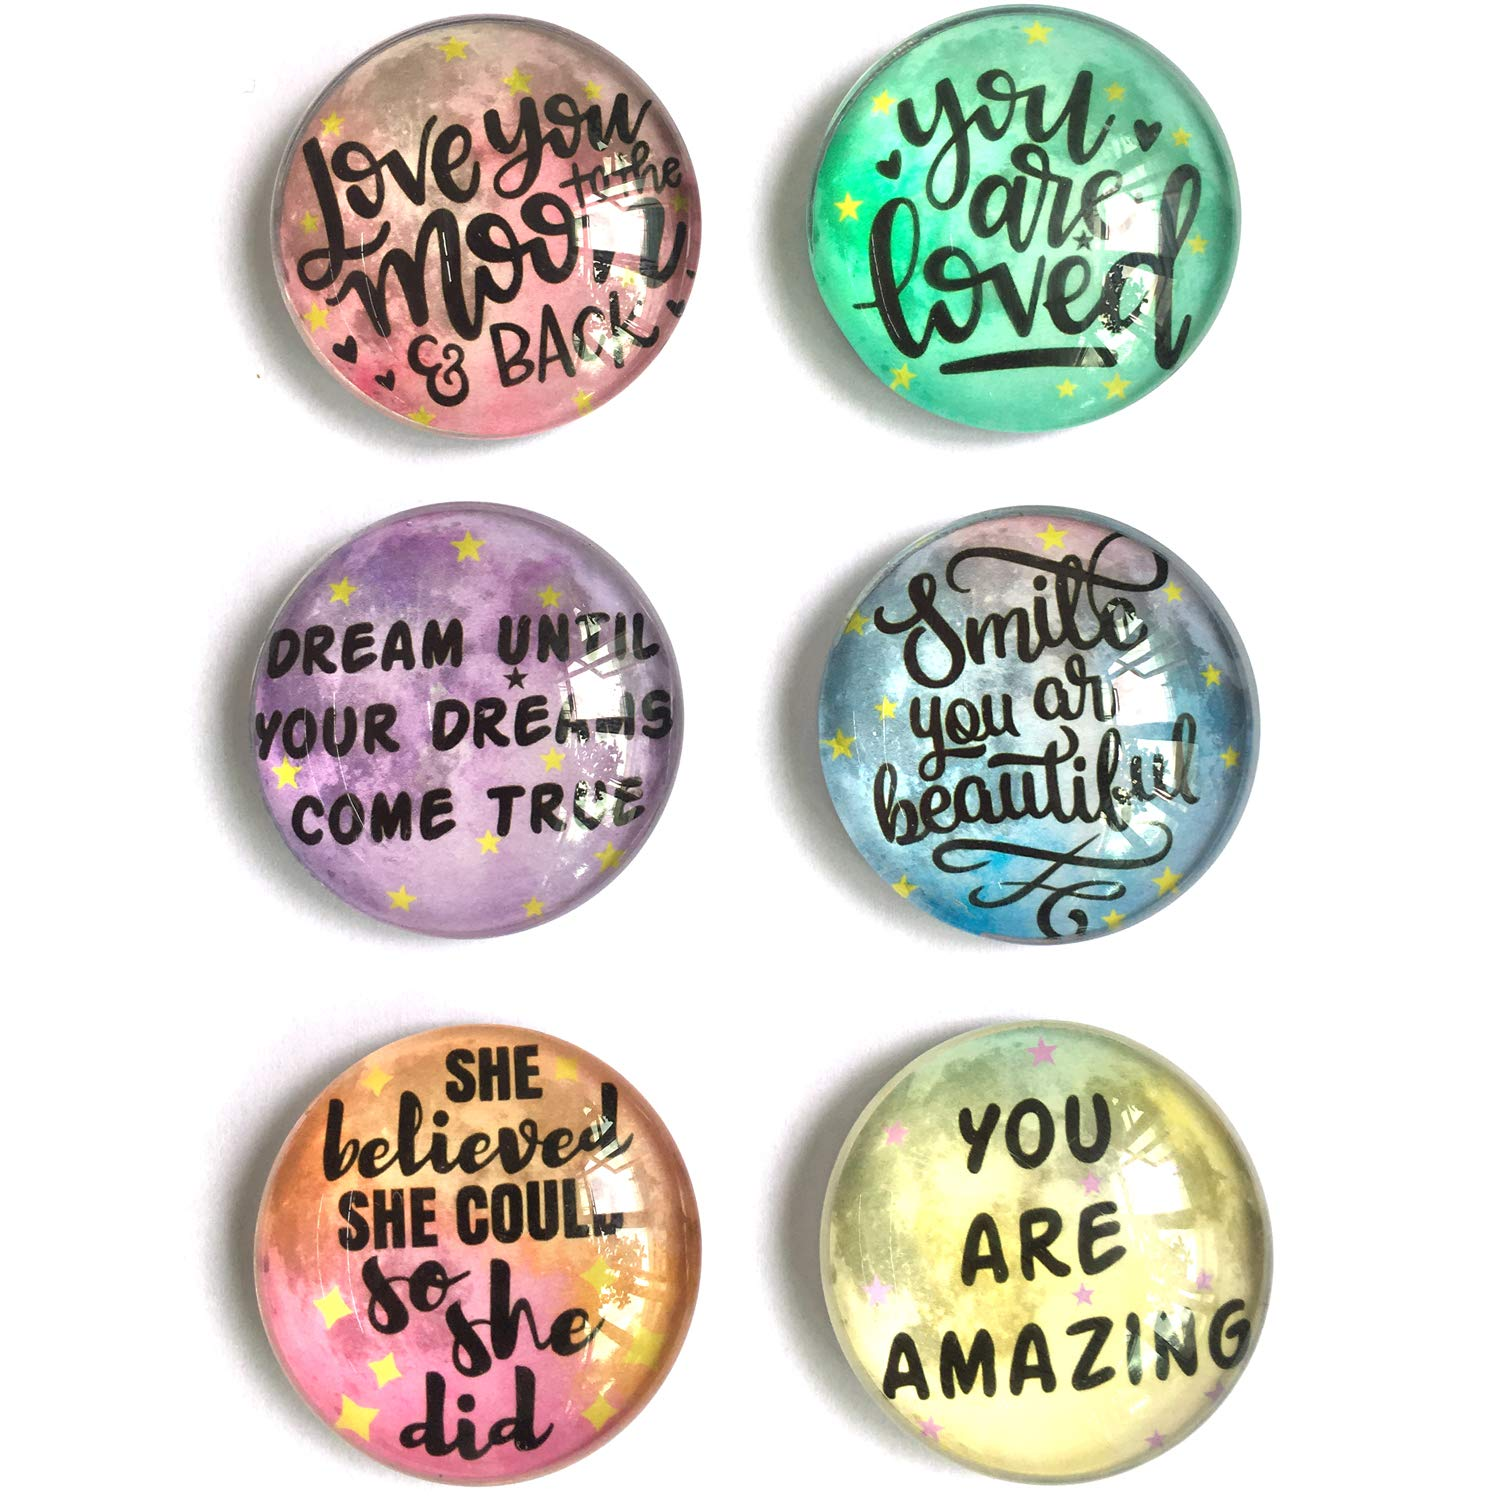 akeke Inspirational Quote Moon Refrigerator Magnets set of 6 Best Gifts for Kids Girls Friend Students Classroom Whiteboard Locker Magnets